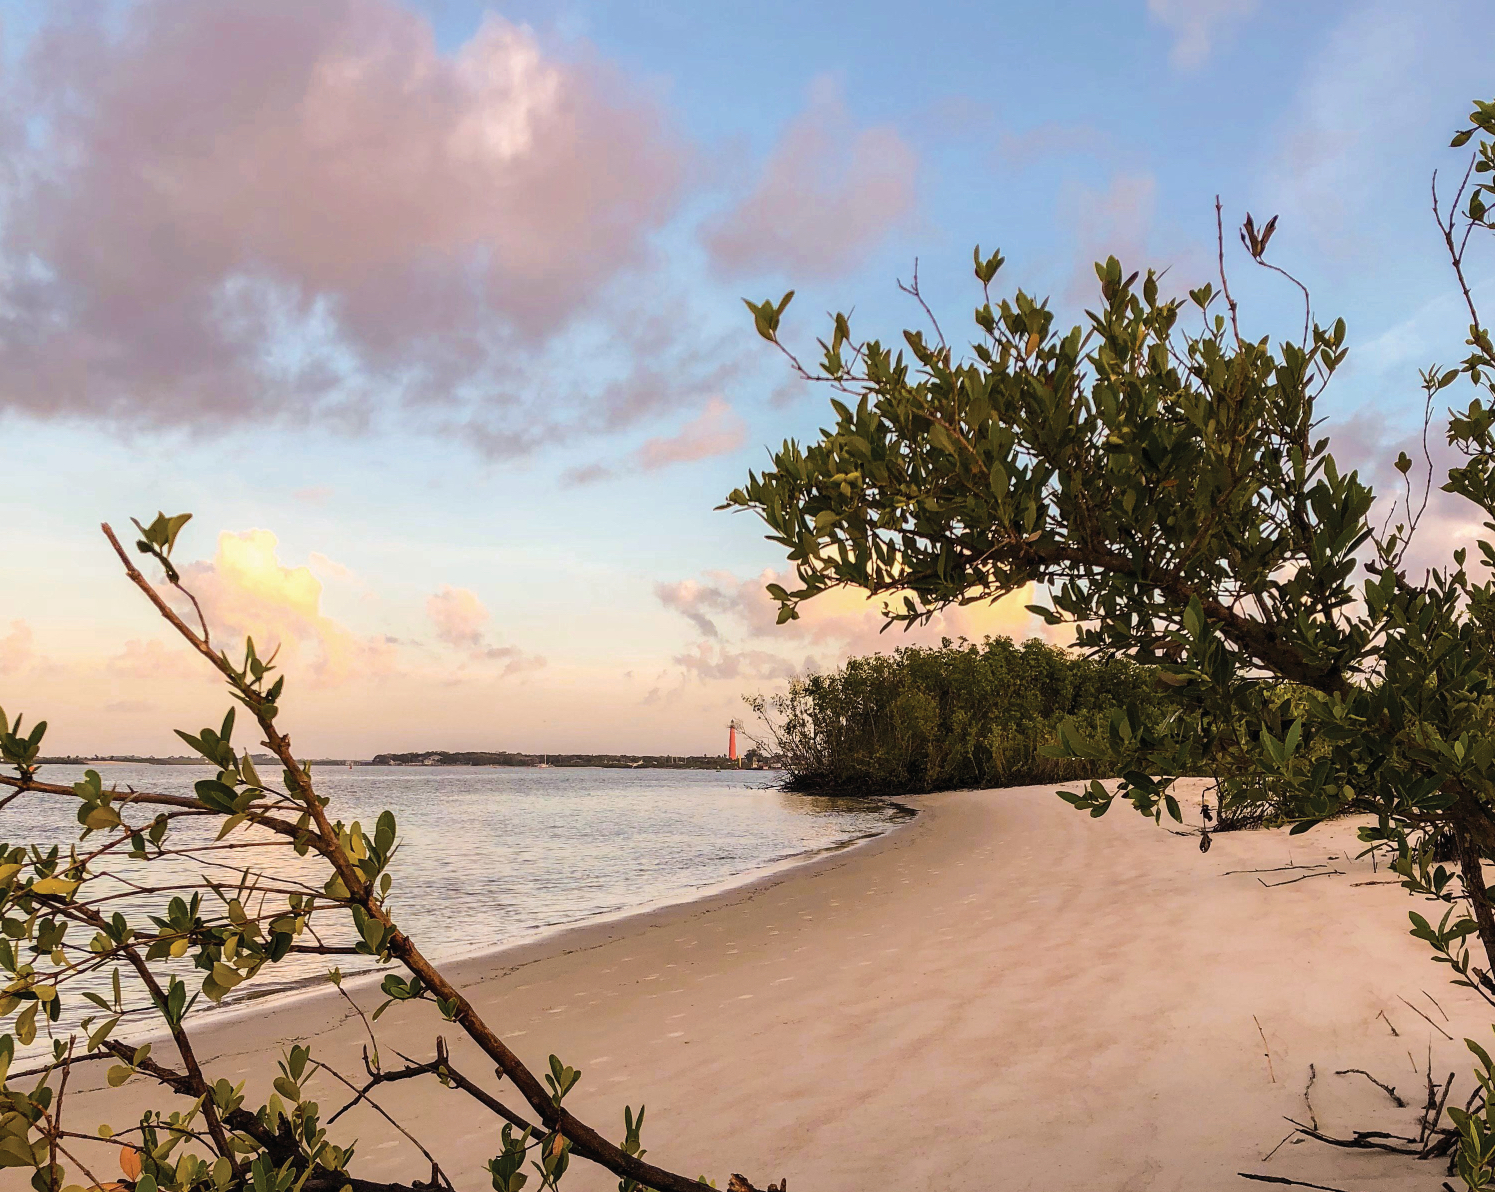 A sandy beach is in the foreground. The beach borders a body of water. It is sunset and the sky is purple, peach, and blue.